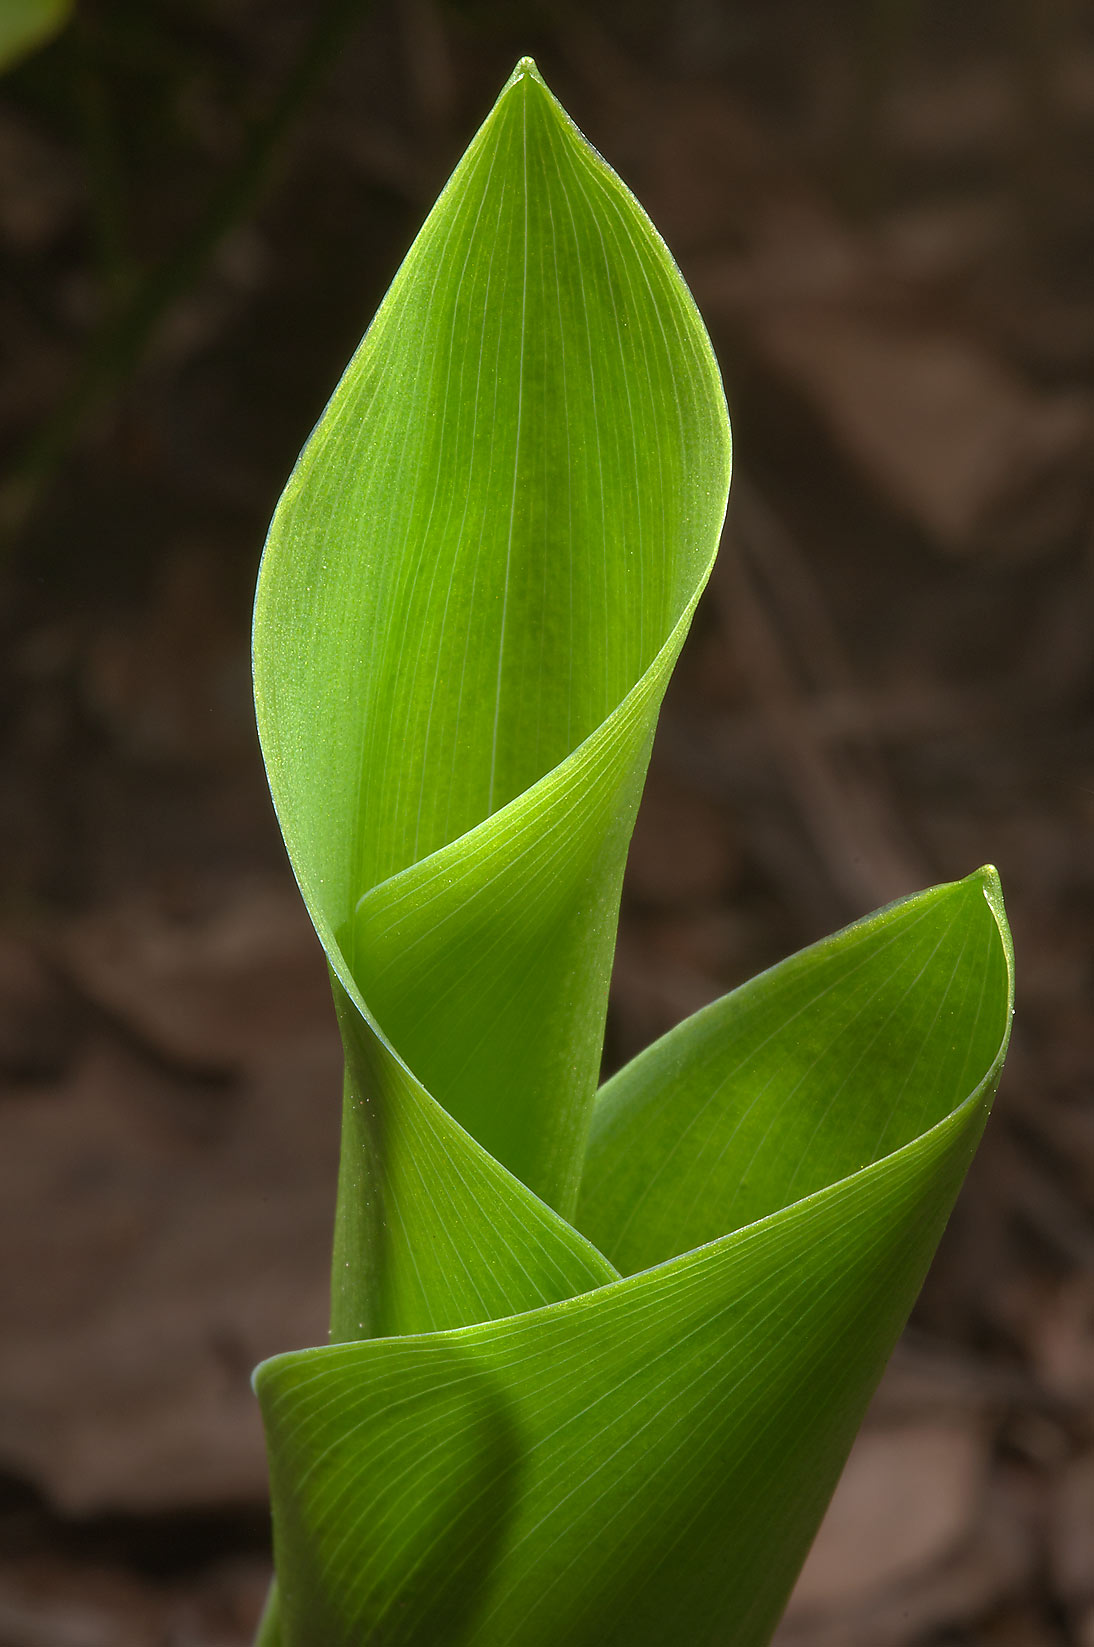 Young leaves of Lily-of-the-valley (Convallaria...a suburb of St.Petersburg, Russia